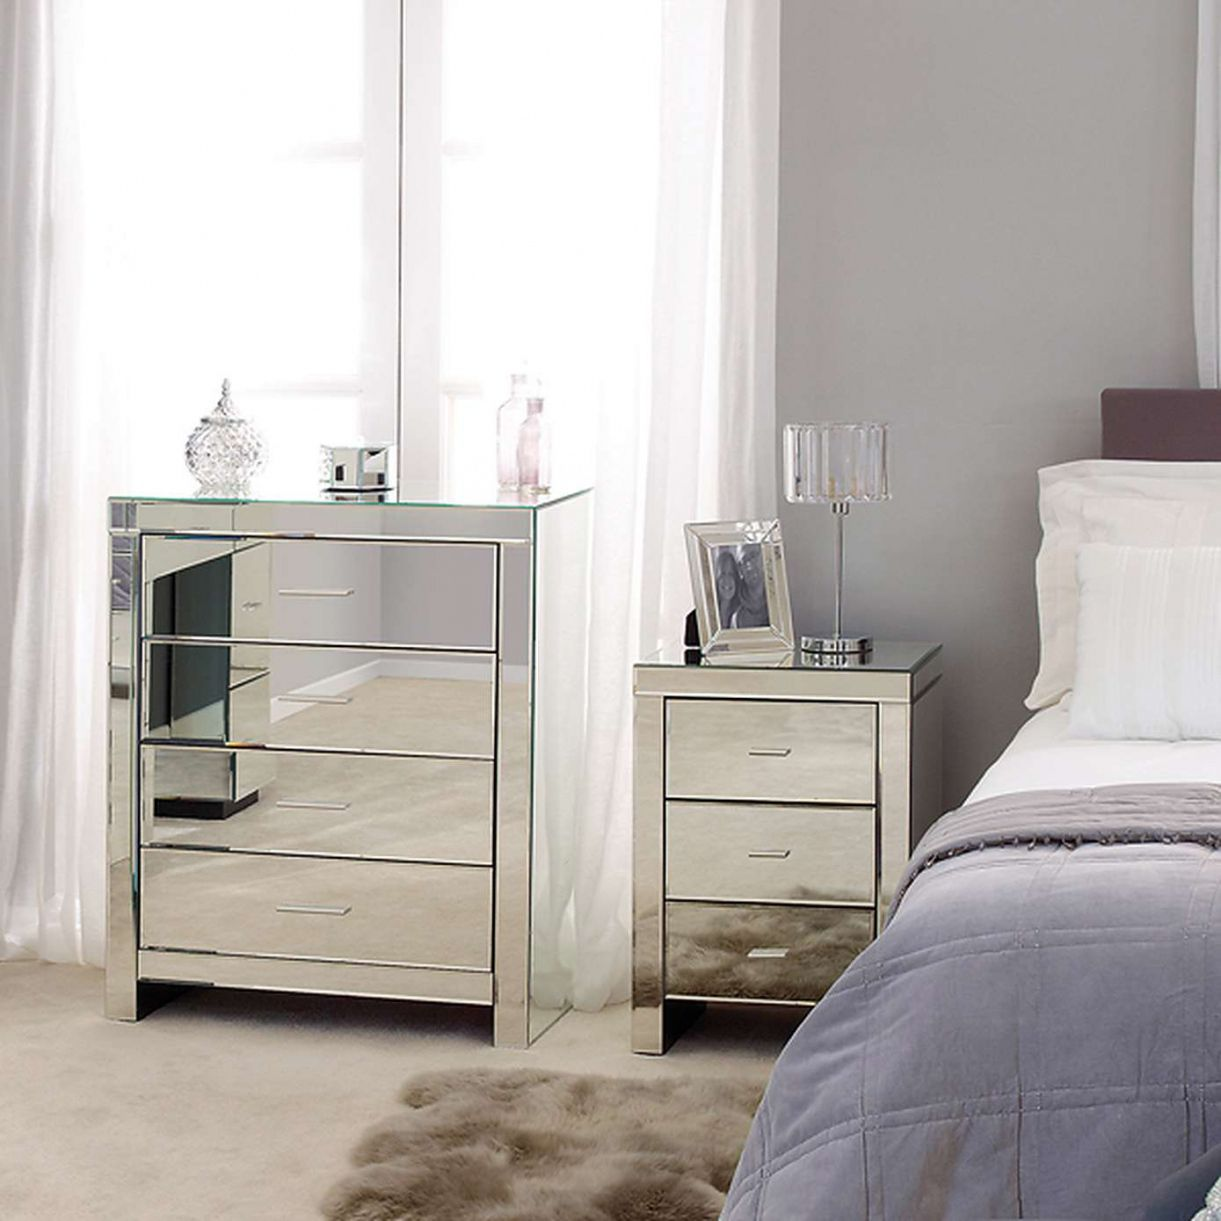 Cheap Mirrored Bedroom Furniture - Interior Design Ideas for Bedroom on cheap mirrored aviator sunglasses, mirrored furniture wholesale furniture, inexpensive mirrored furniture, cheap mirrored tables, diy mirrored furniture, cheap mirrored cabinet, cheap reclaimed furniture, bedrooms with mirrored furniture, mirrored accent furniture, target mirrored furniture, cheap bathroom remodeling tips, best mirrored furniture, jcpenney mirrored furniture, cheap mirrored desk, all mirror furniture, cheap art deco furniture, cheap coffee tables, home goods mirrored furniture, ebay mirrored furniture, cheap vintage chairs,